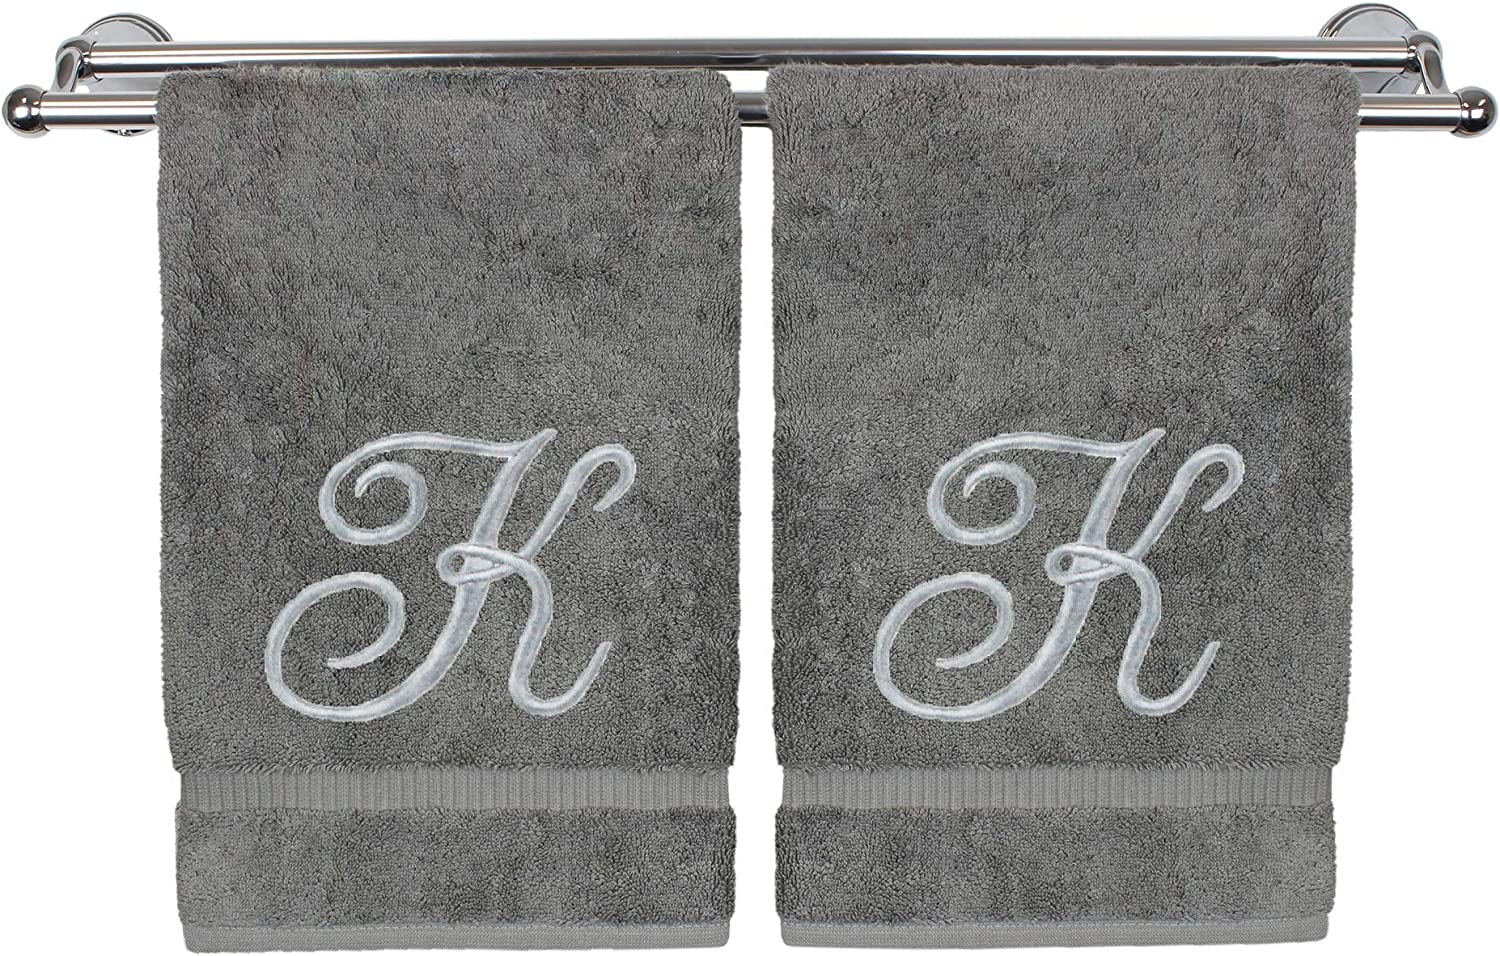 Monogrammed Hand Towel, Personalized Gift, 16 x 30 Inches - Set of 2 - Silver Embroidered Towel - Extra Absorbent 100% Turkish Cotton- Soft Terry Finish - for Bathroom, Kitchen and Spa- Script K Gray